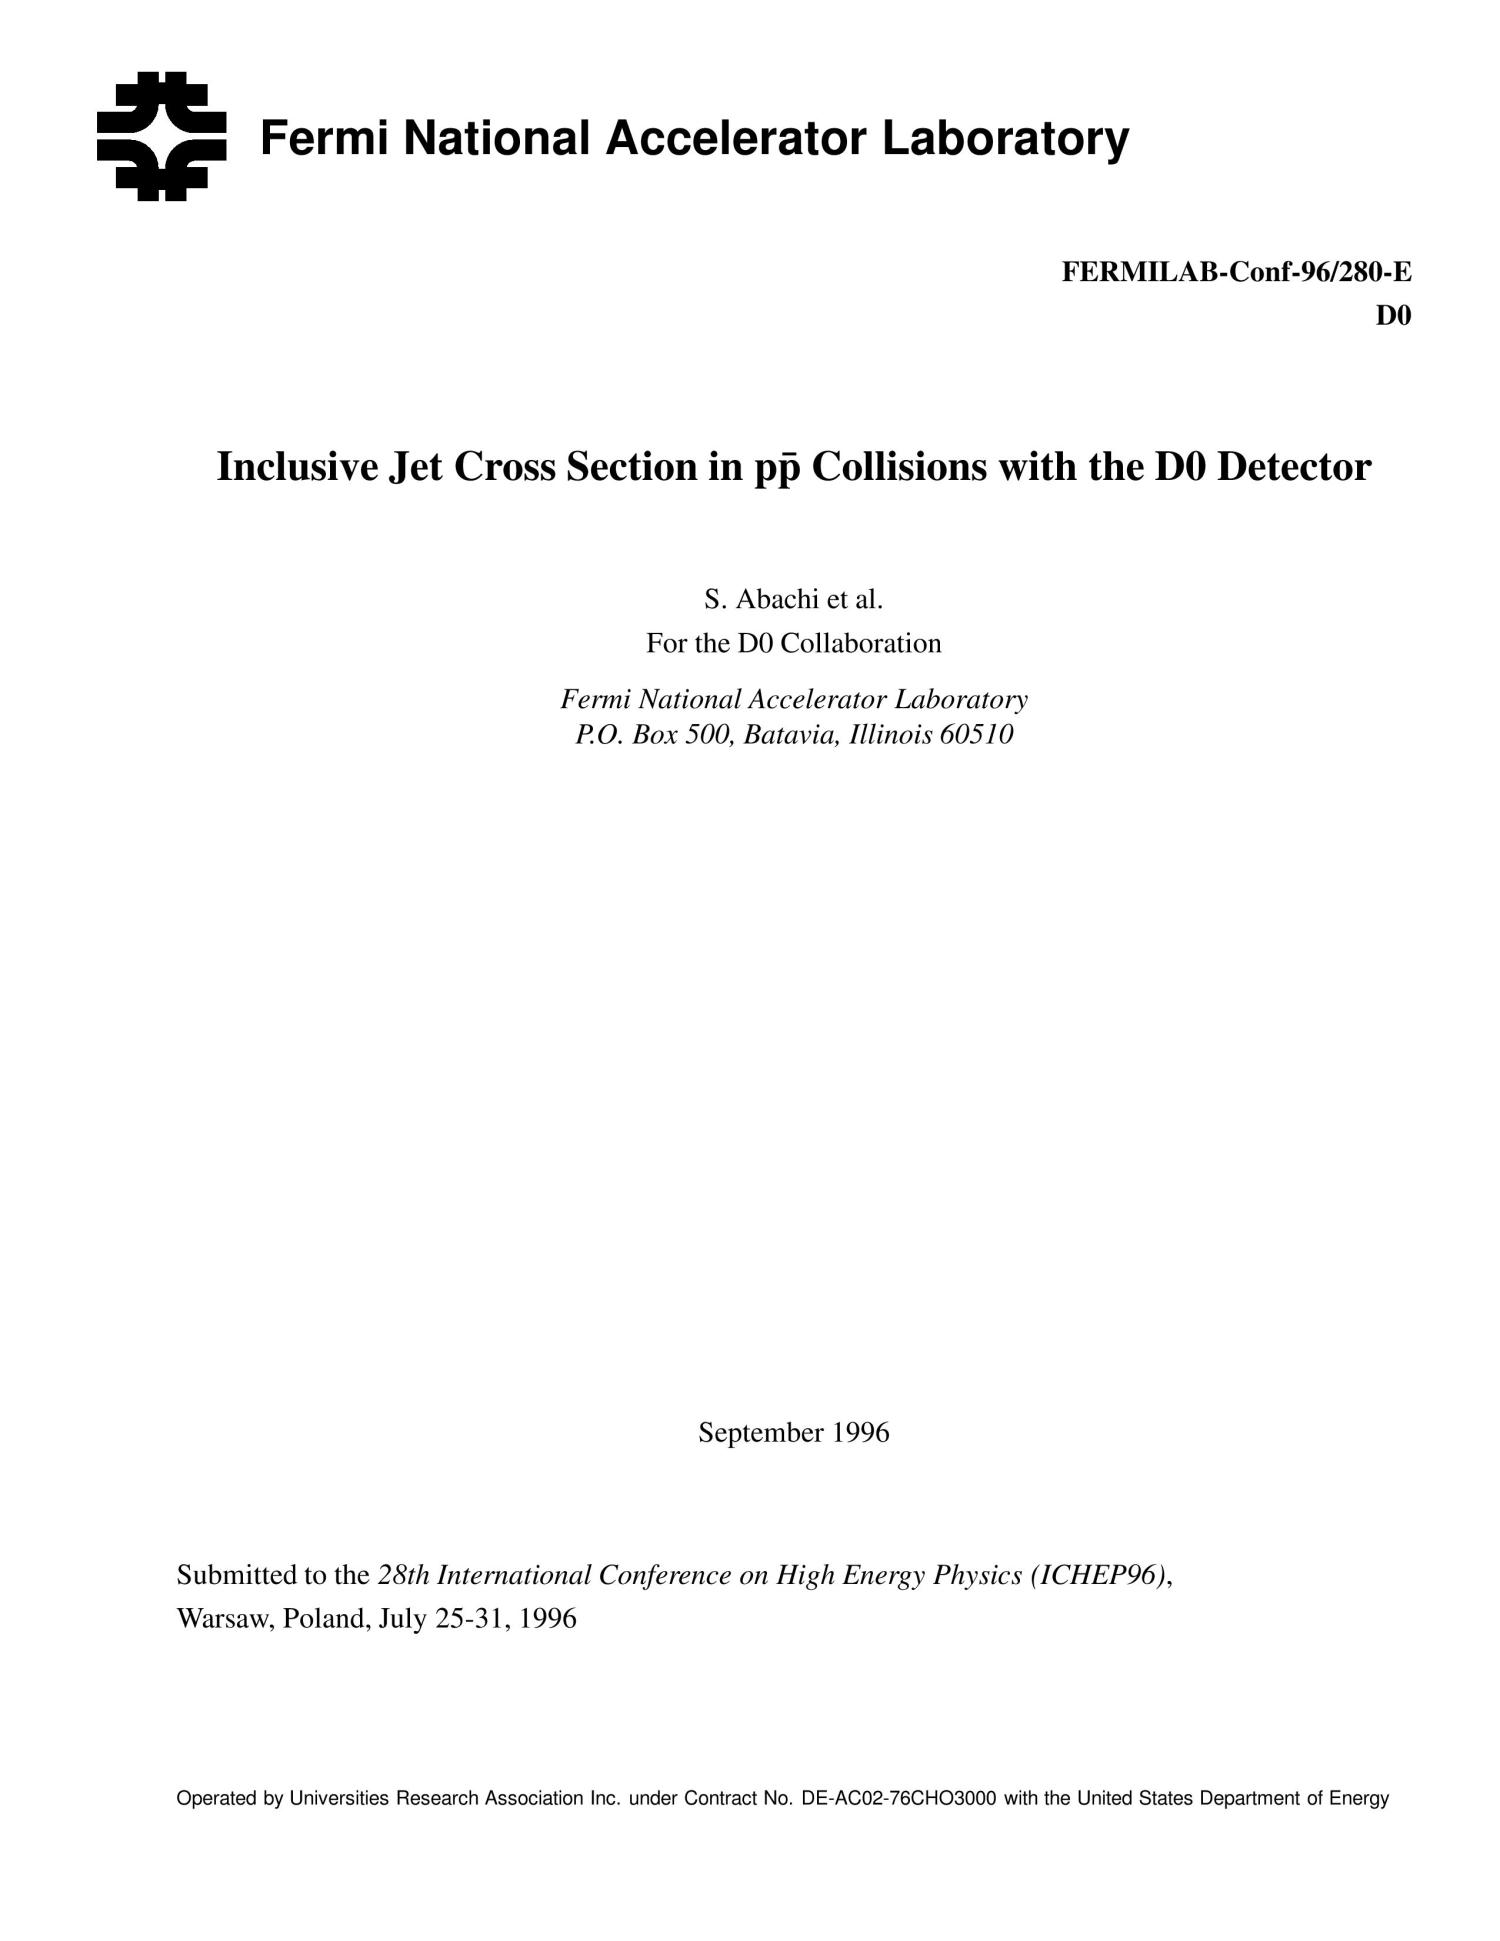 Inclusive jet cross section in p{bar p} collisions with the D0 detector                                                                                                      [Sequence #]: 1 of 10